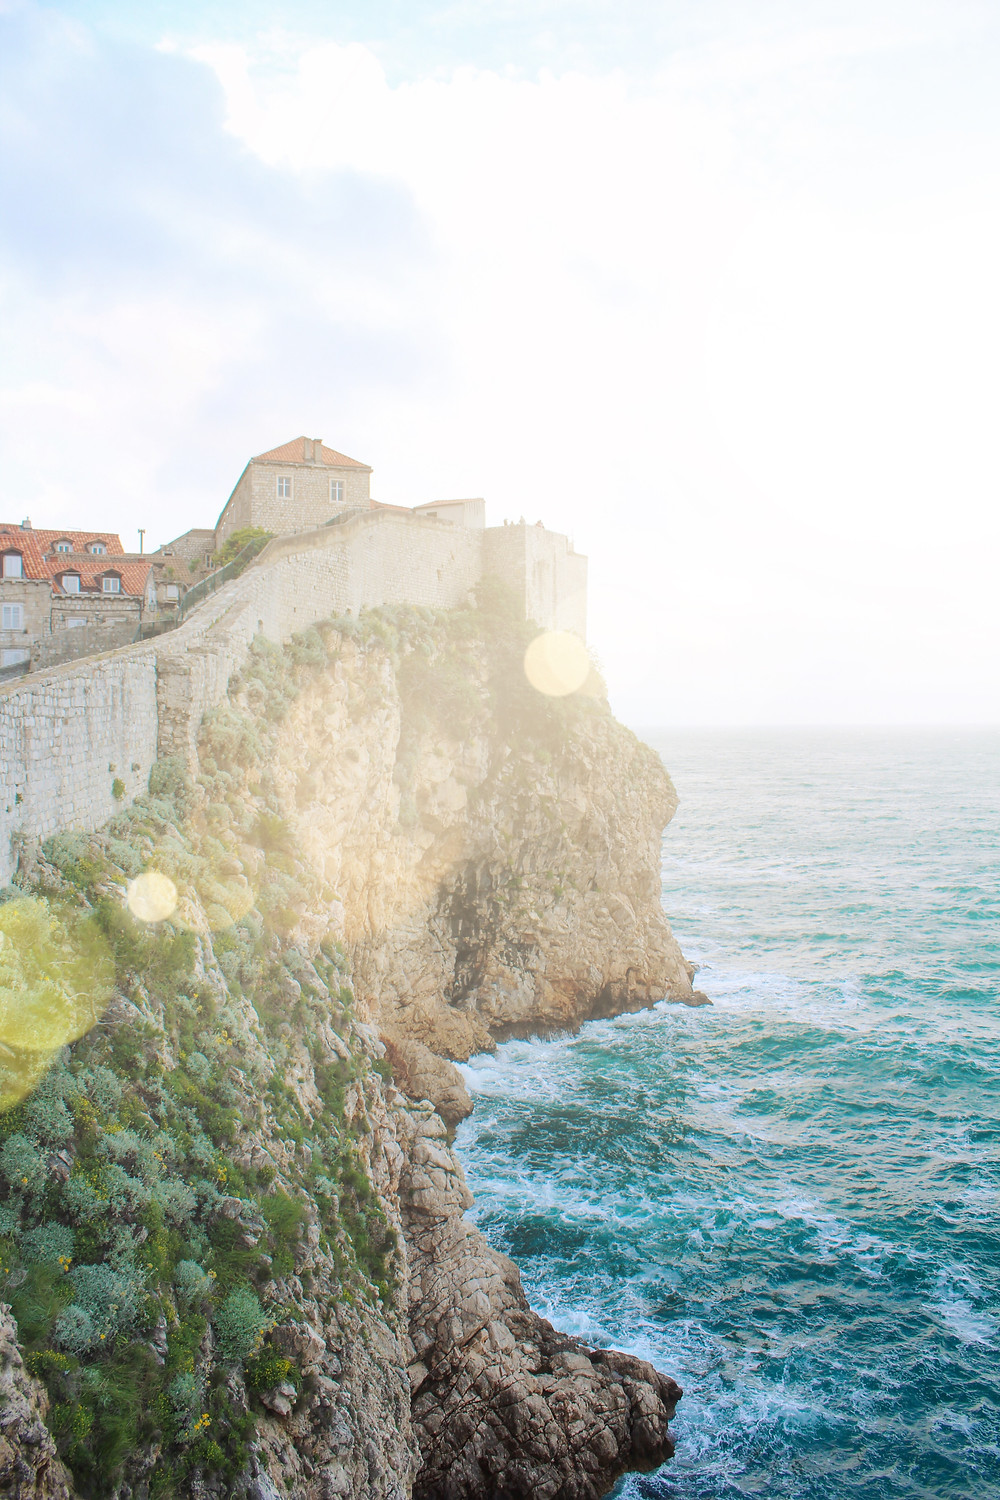 Dubrovnik's city walls